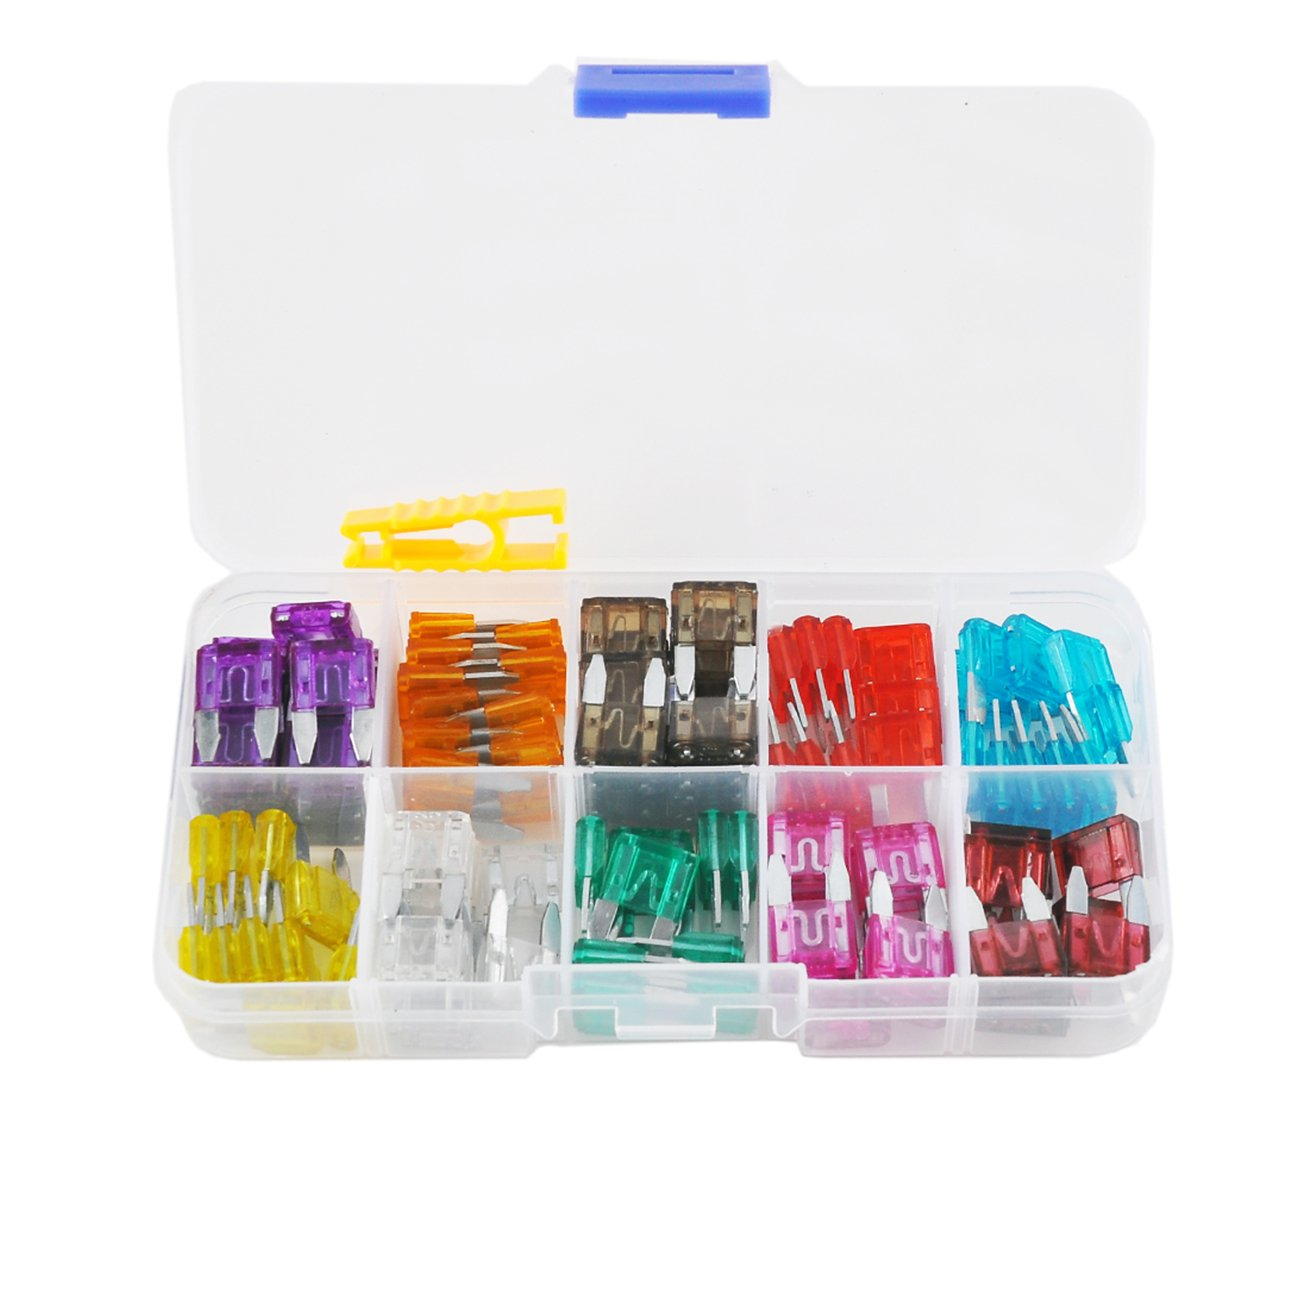 120pcs Auto Mini Blade Fuse Kit 3A 5A 7.5A 10A 15A 20A 25A 30A 35A 40A Assorted Set for Car Boat Truck SUV by RCRunning